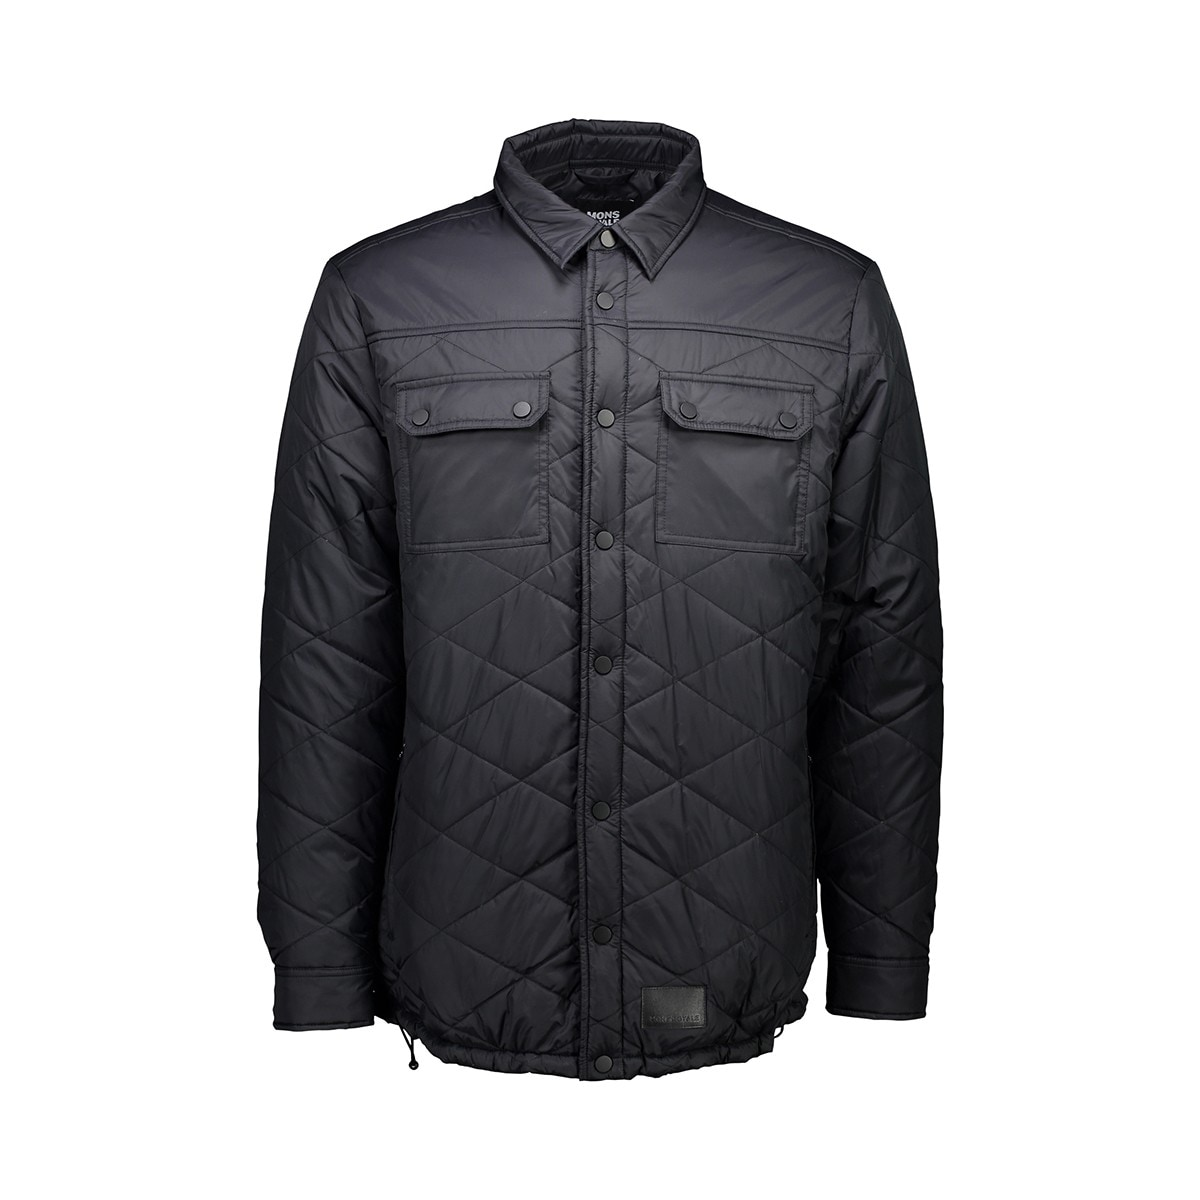 Mons Royale The Keeper Insulated Shirt